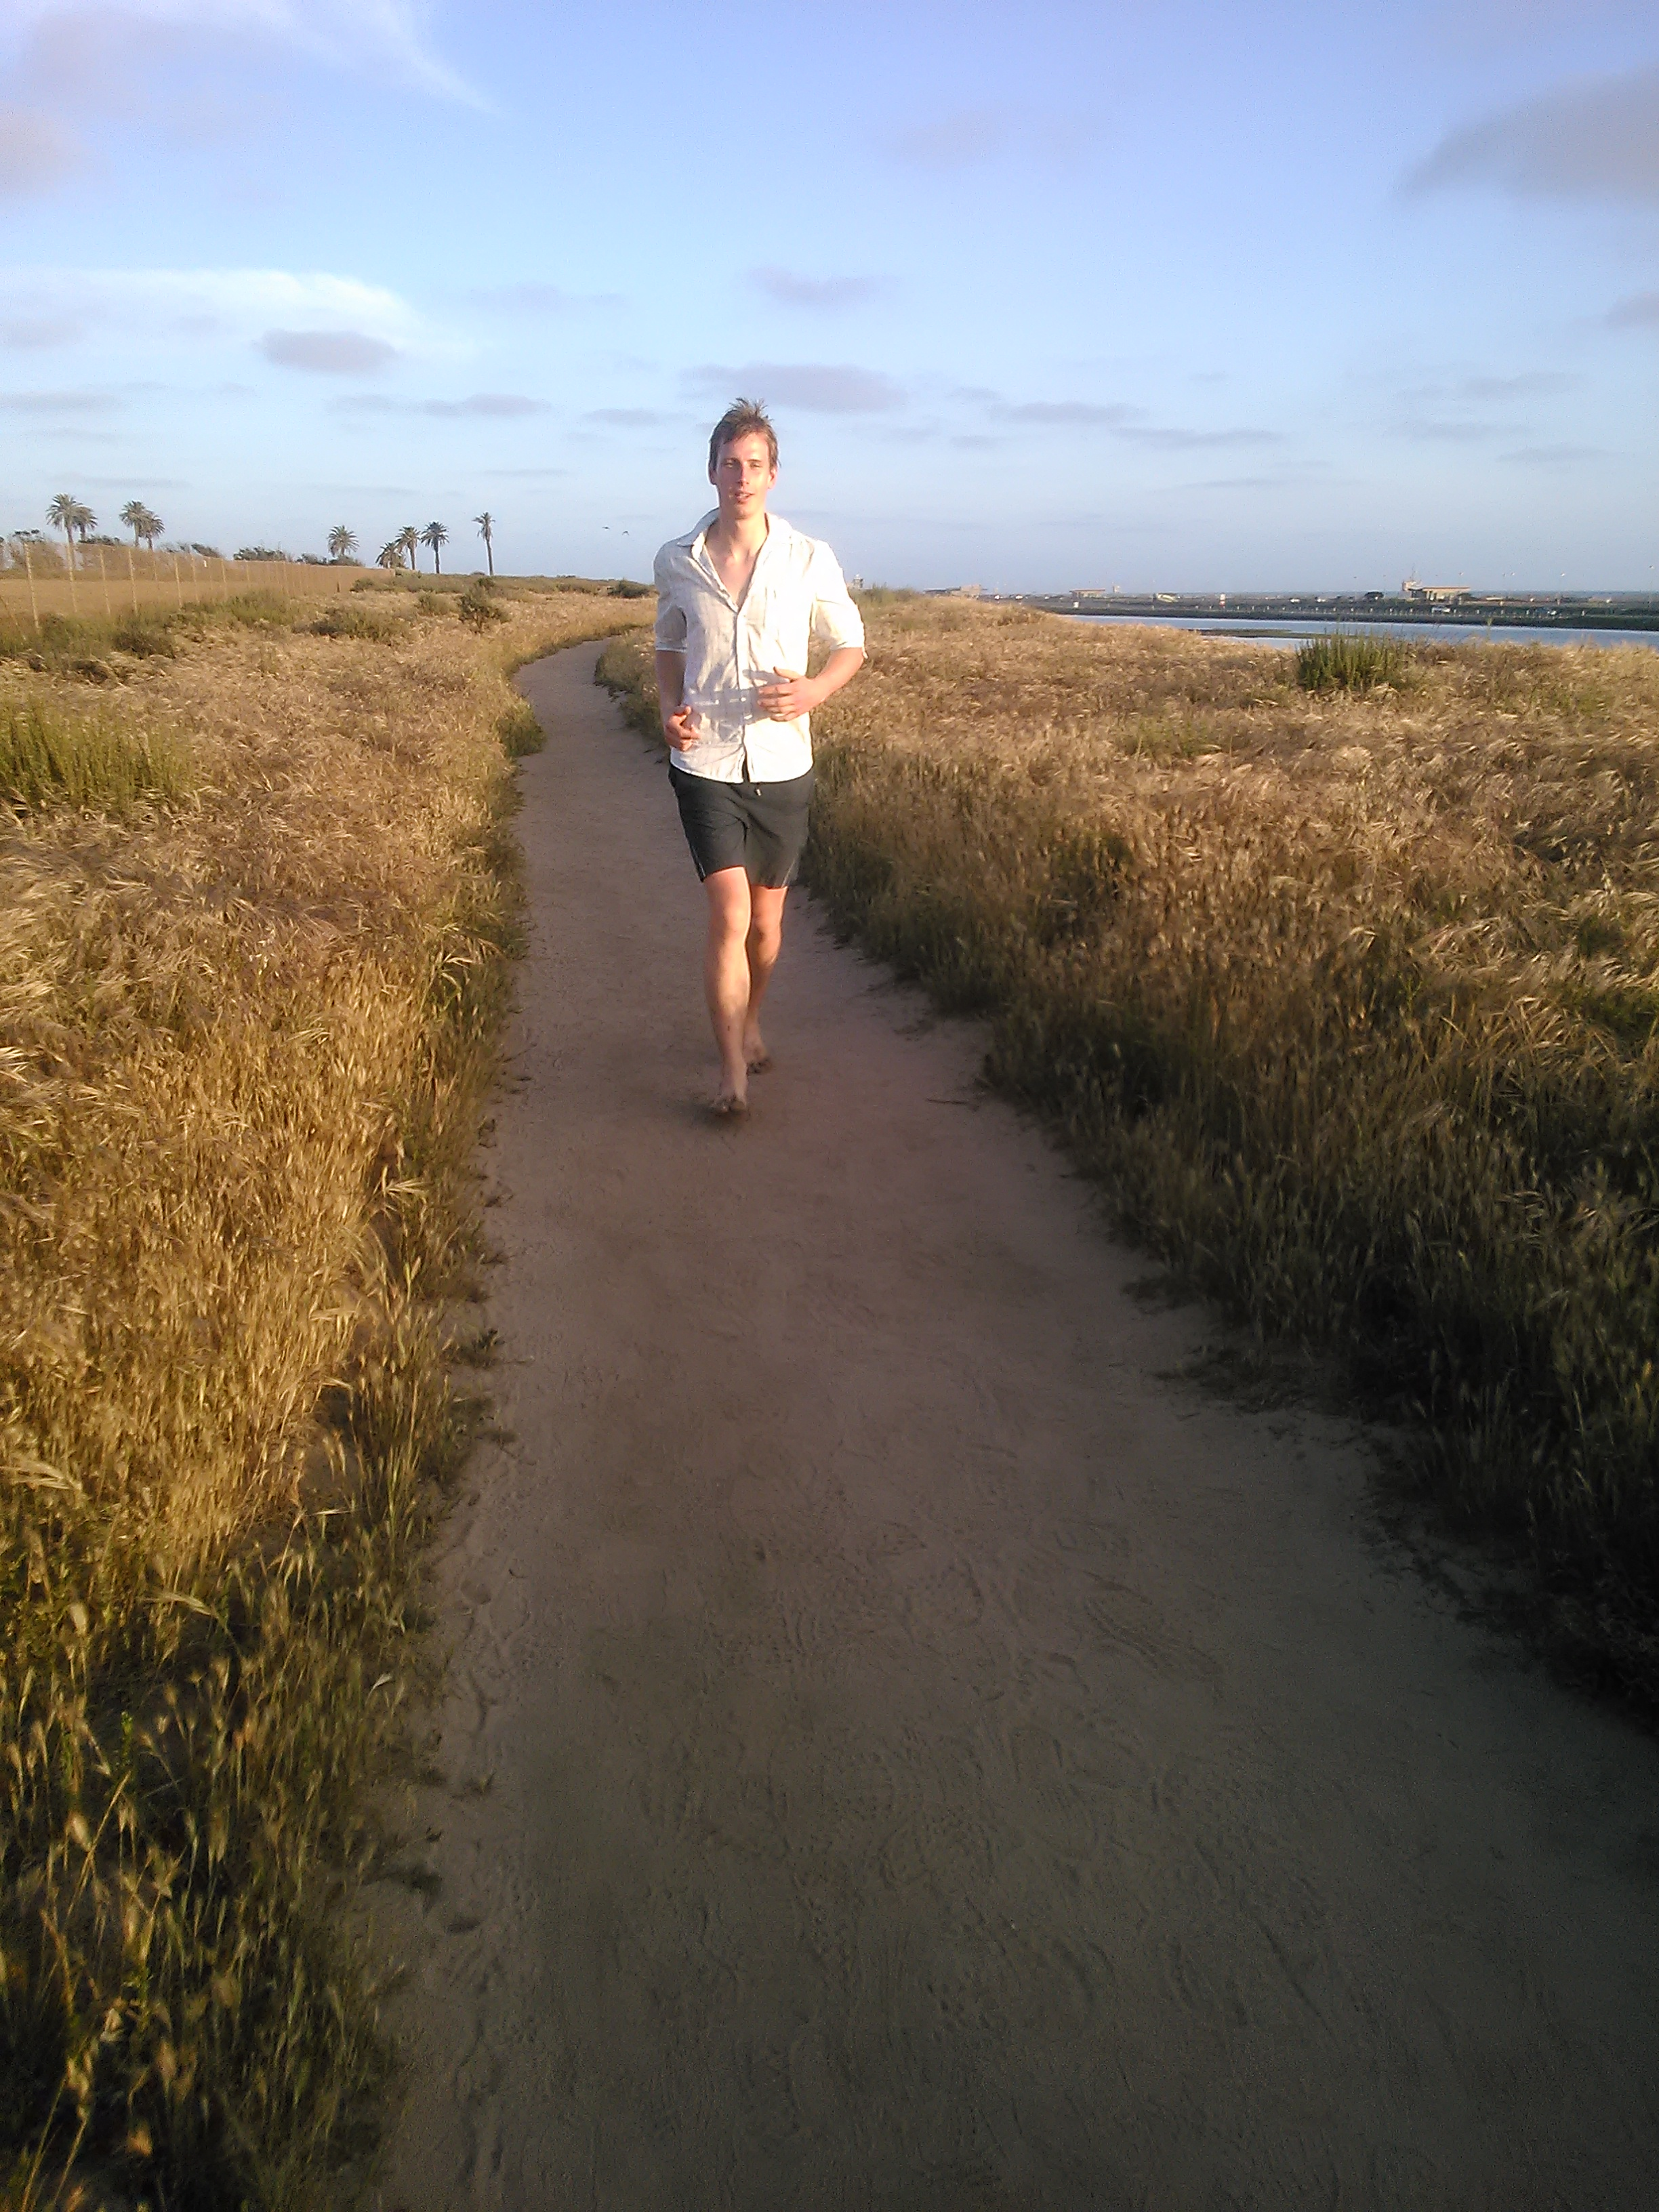 Jeroen running on trails in the Bolsa Chica Nature Preserve